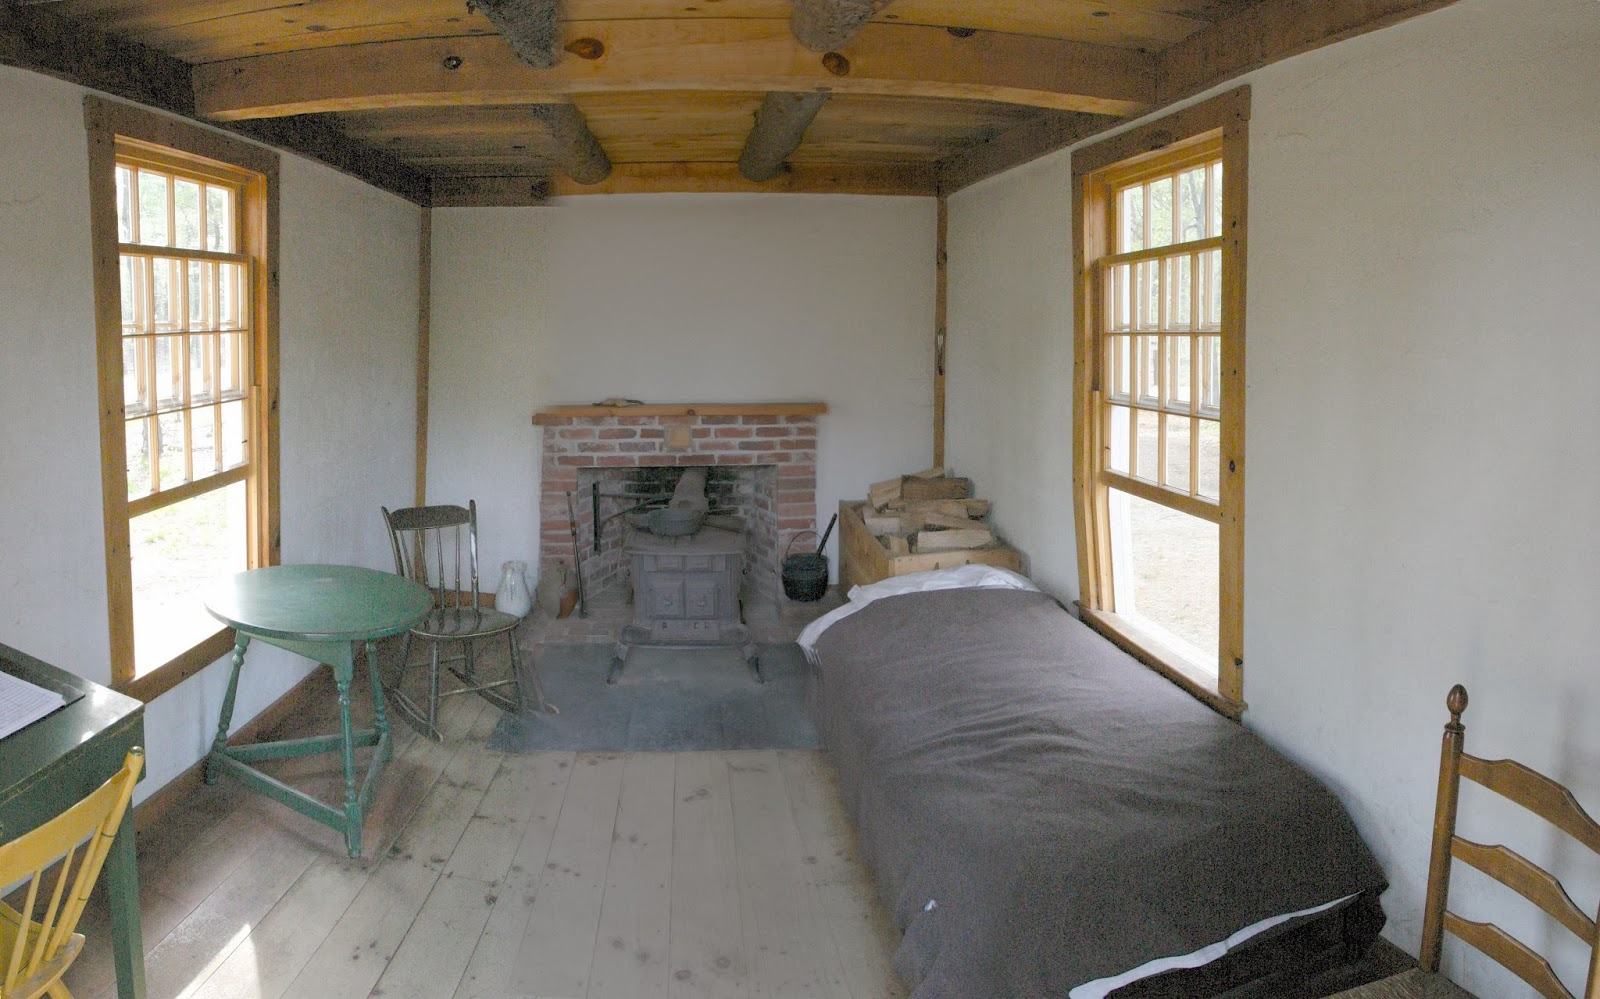 Interior of Thoreaus Cabin, bed, table, chairs